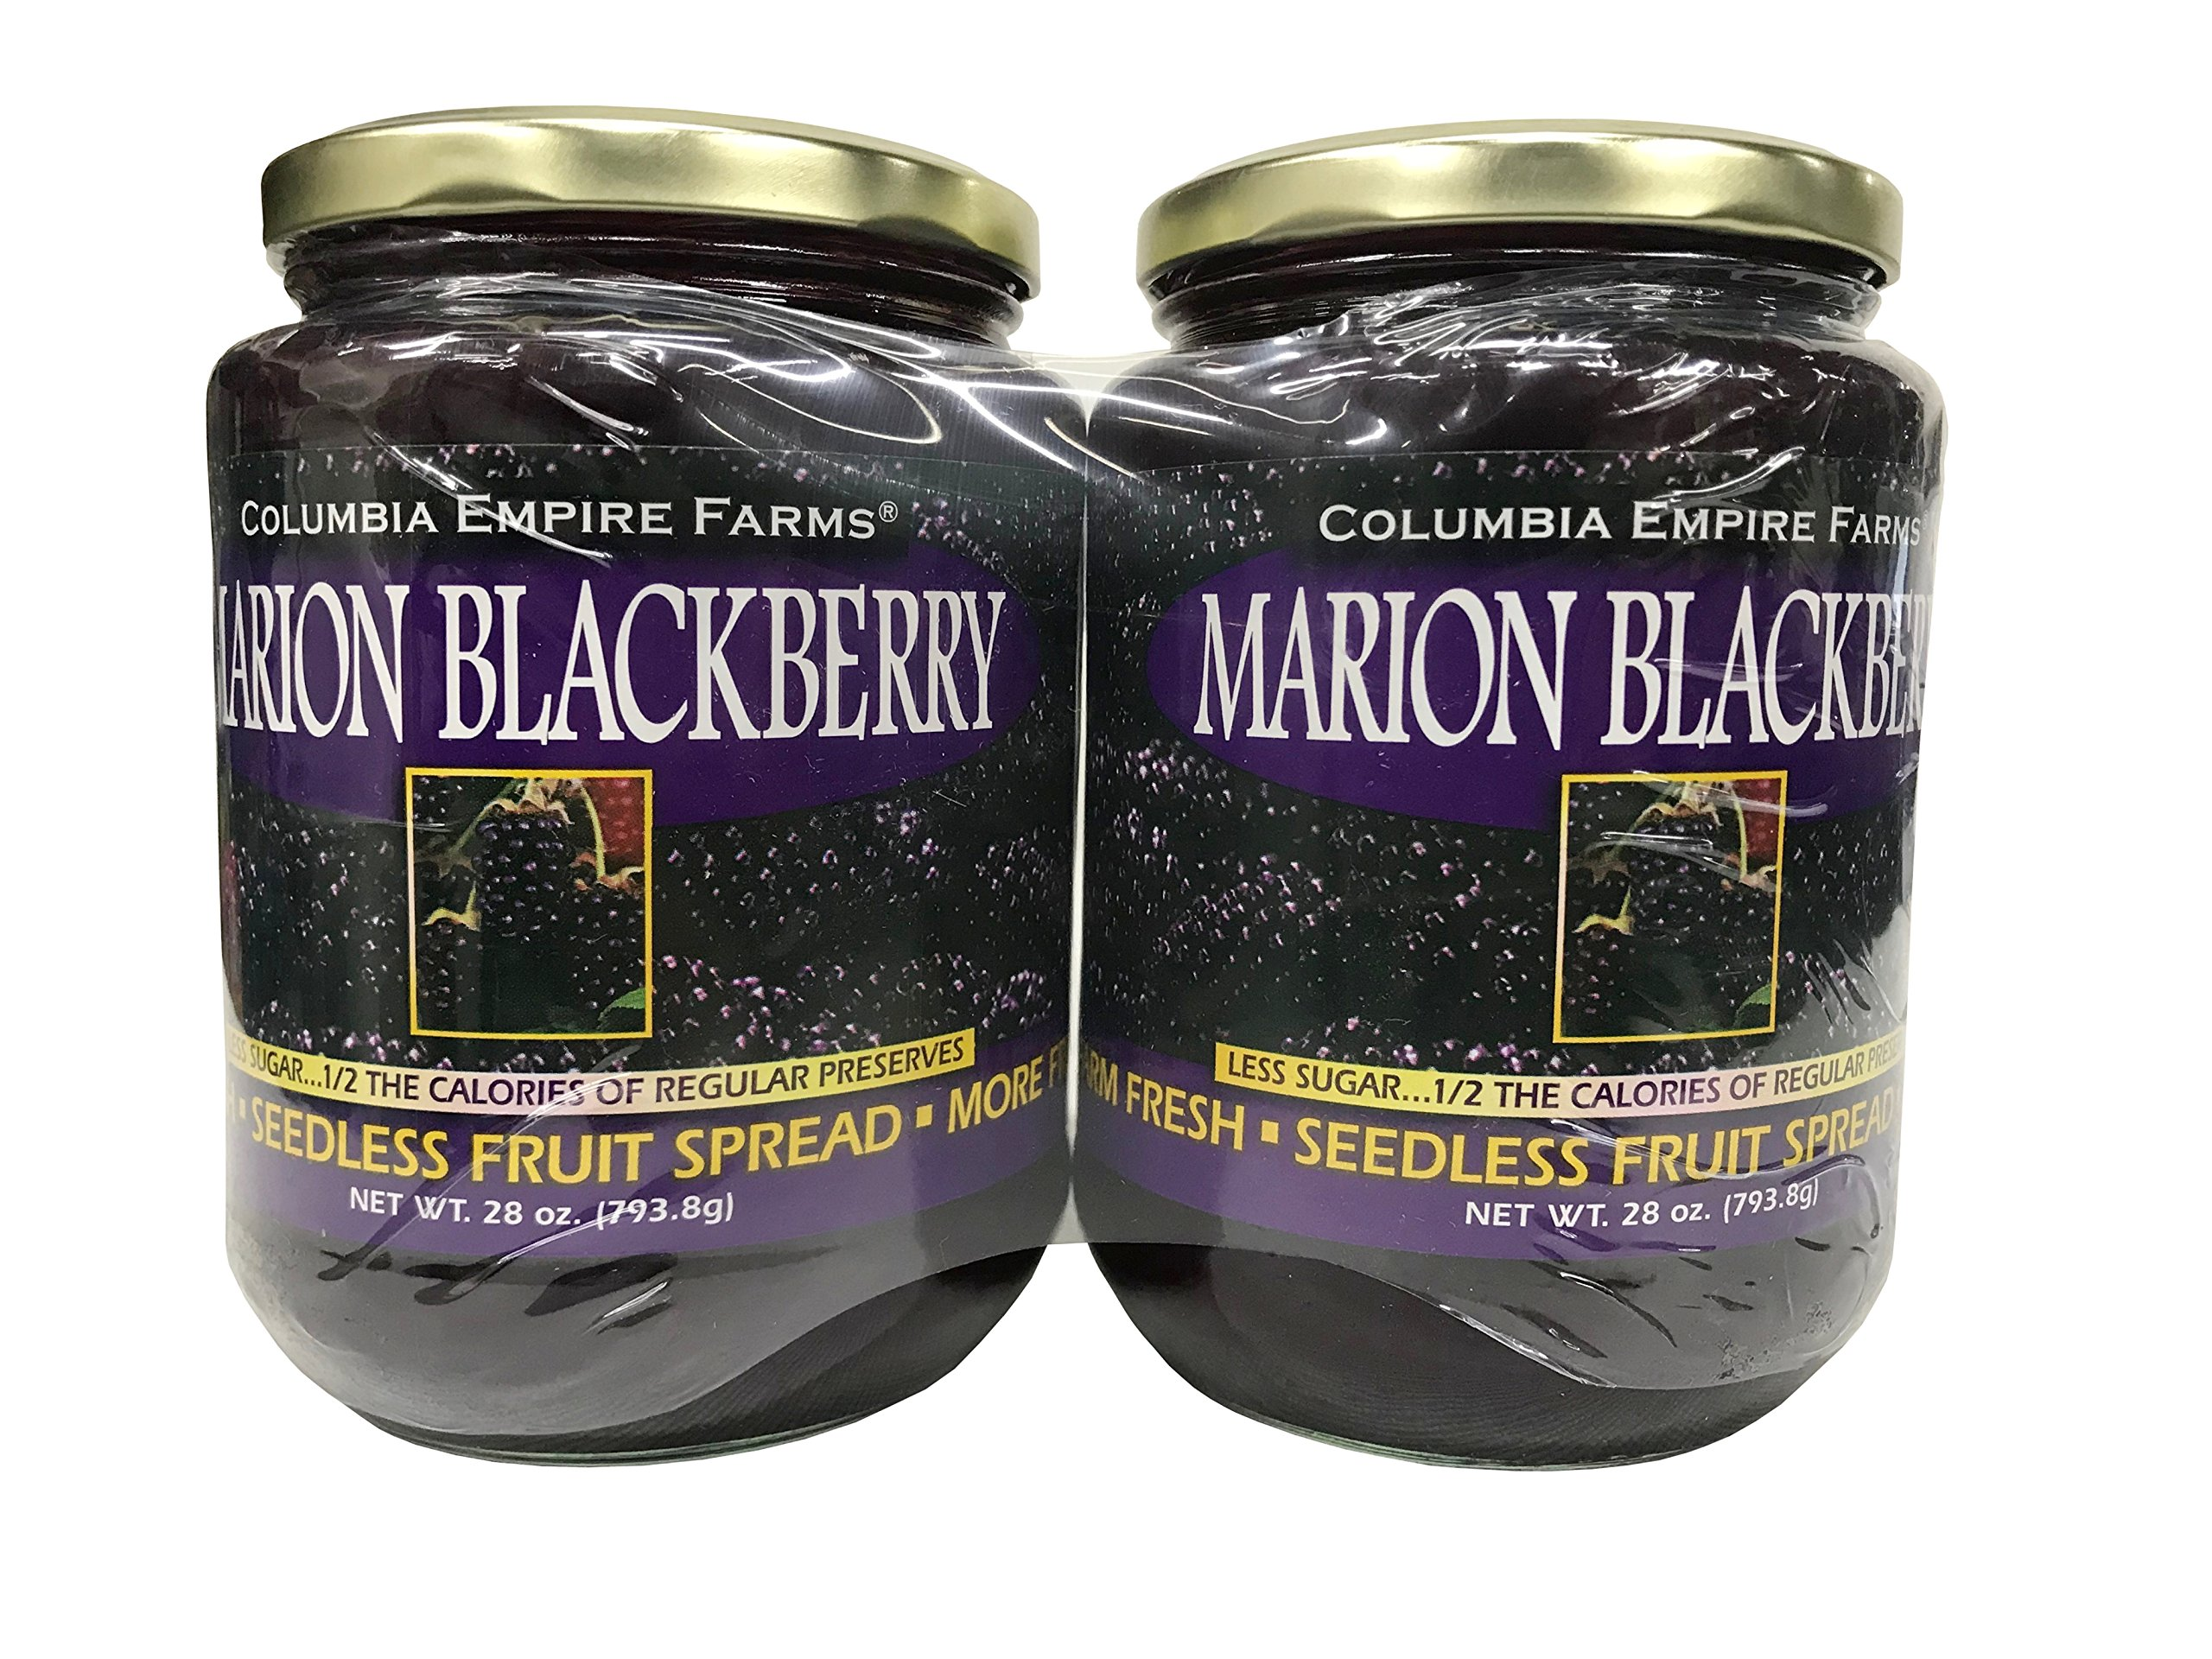 Columbia Empire Farms Marion Blackberry Seedless Fruit Spread 28 OZ 2 Pack